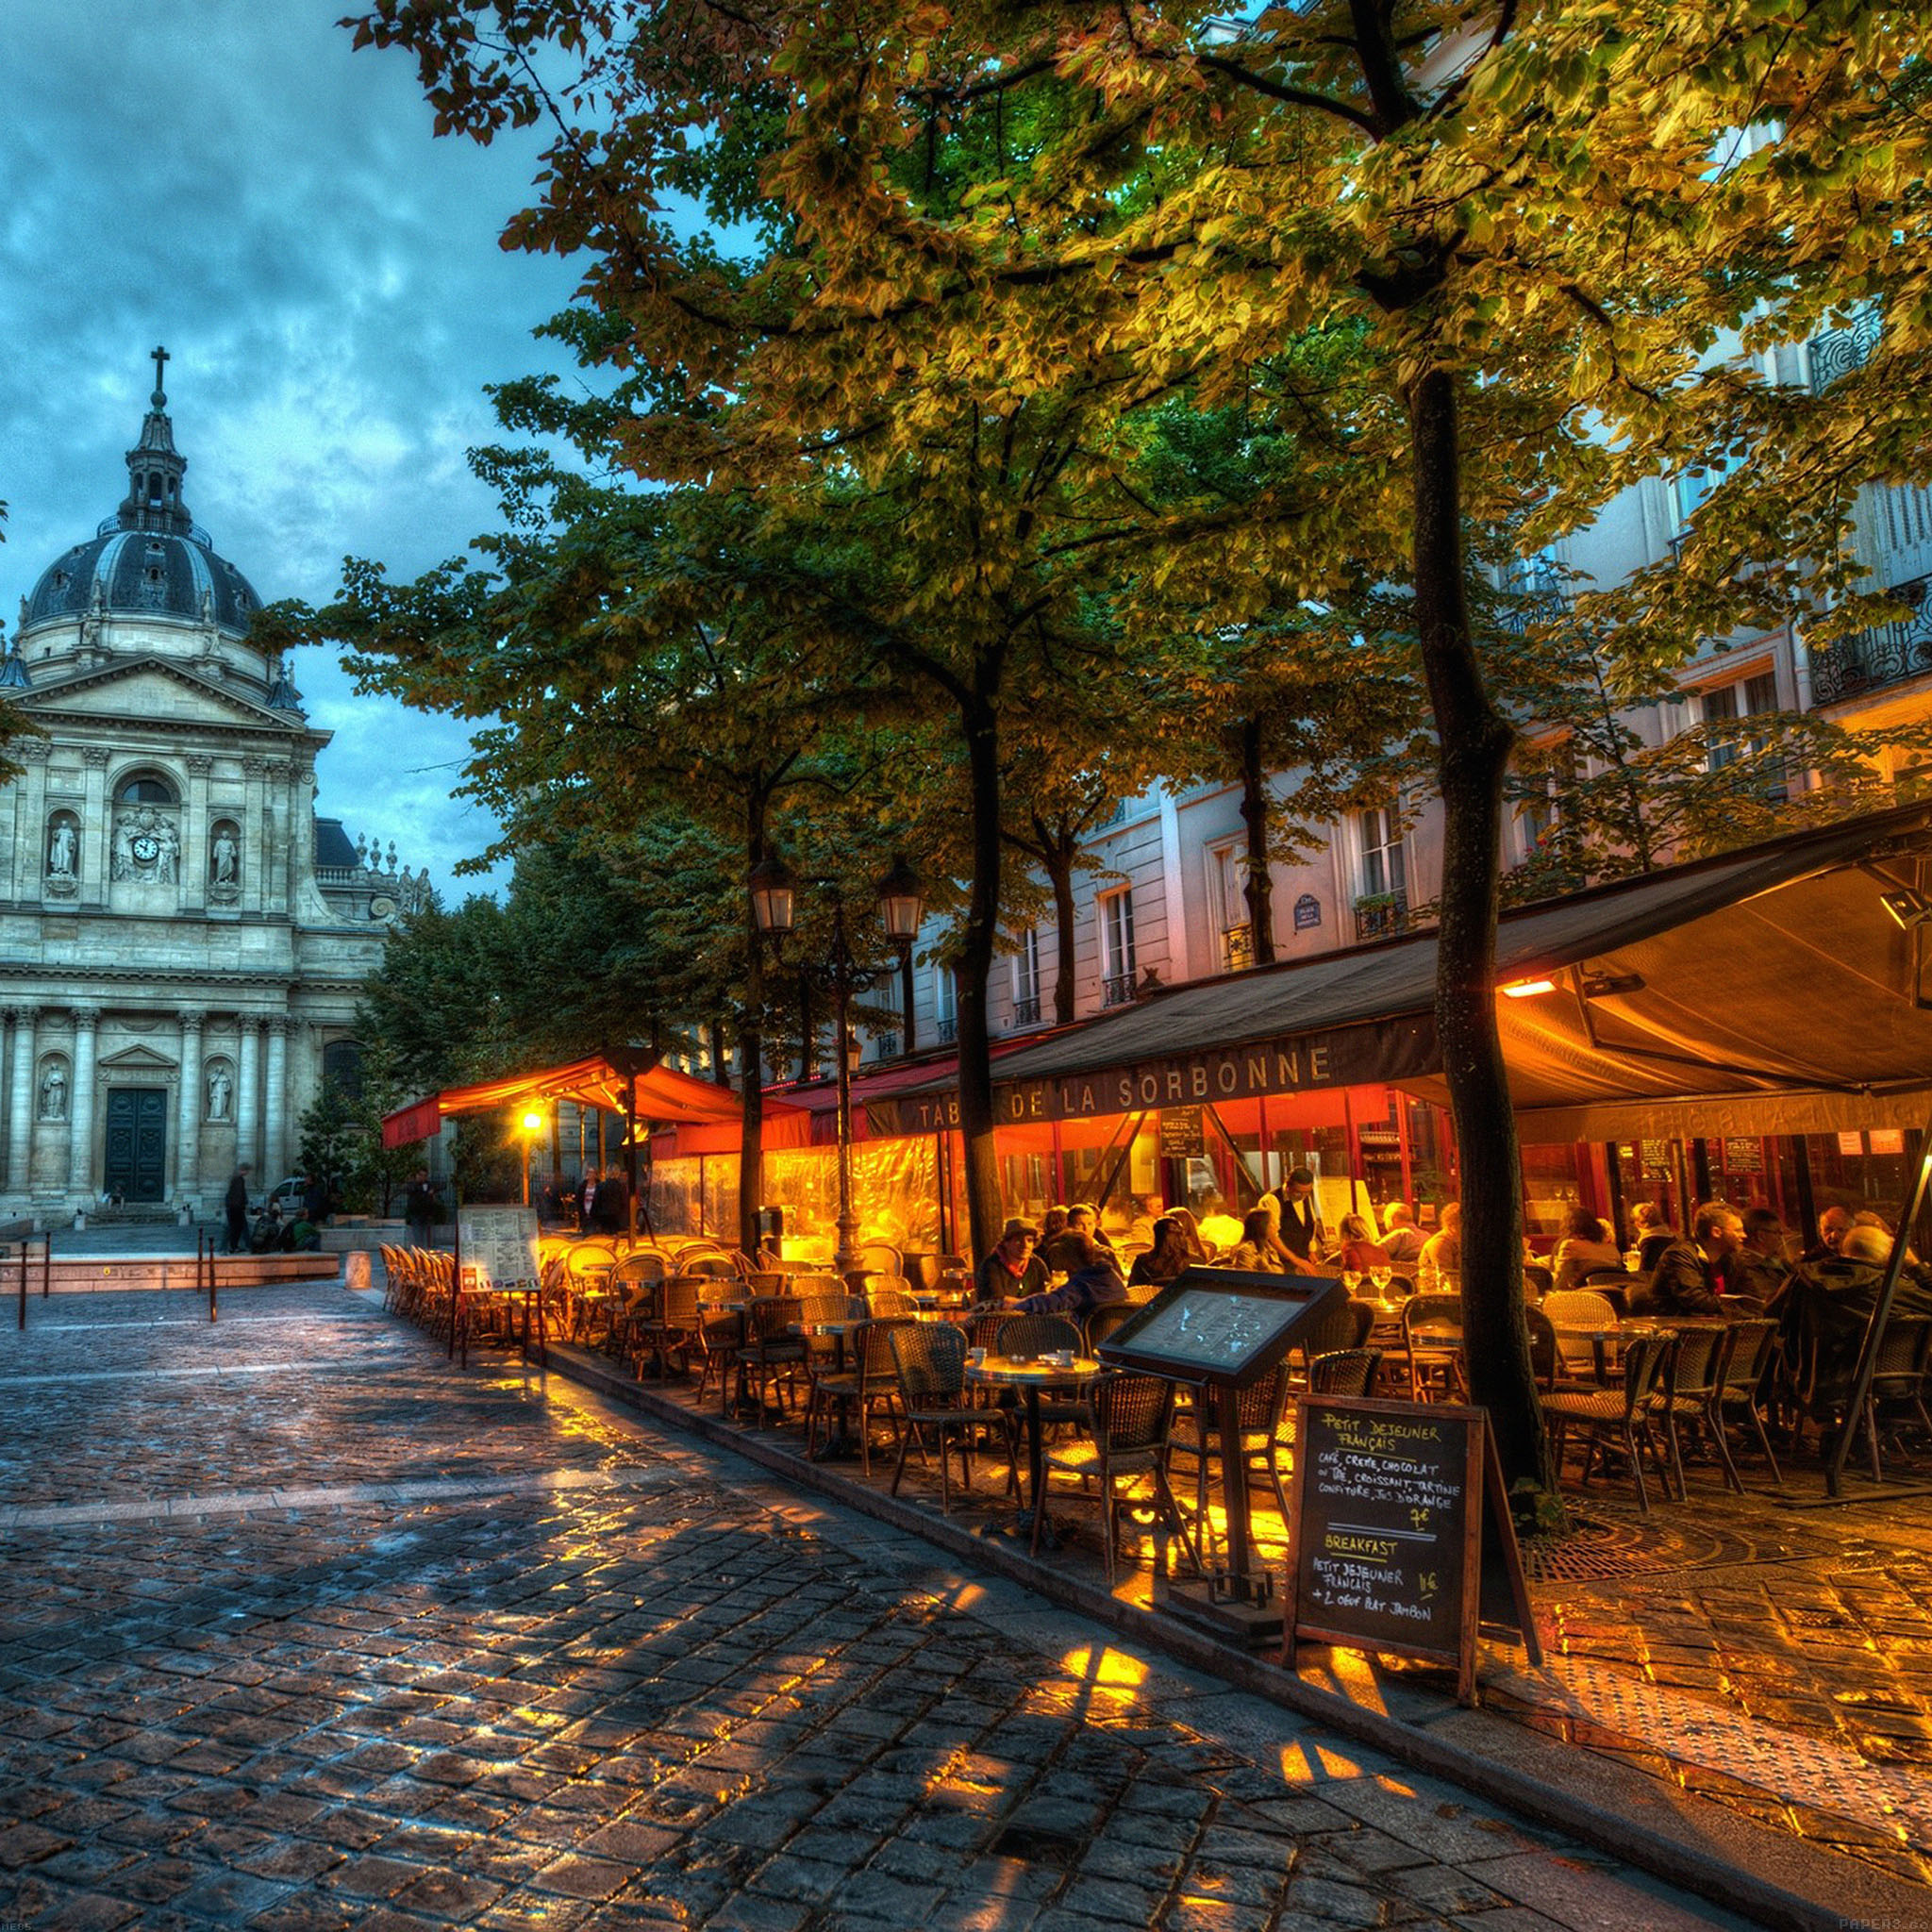 Abstract Fall Wallpaper Me85 De La Sorbonne City Street Papers Co